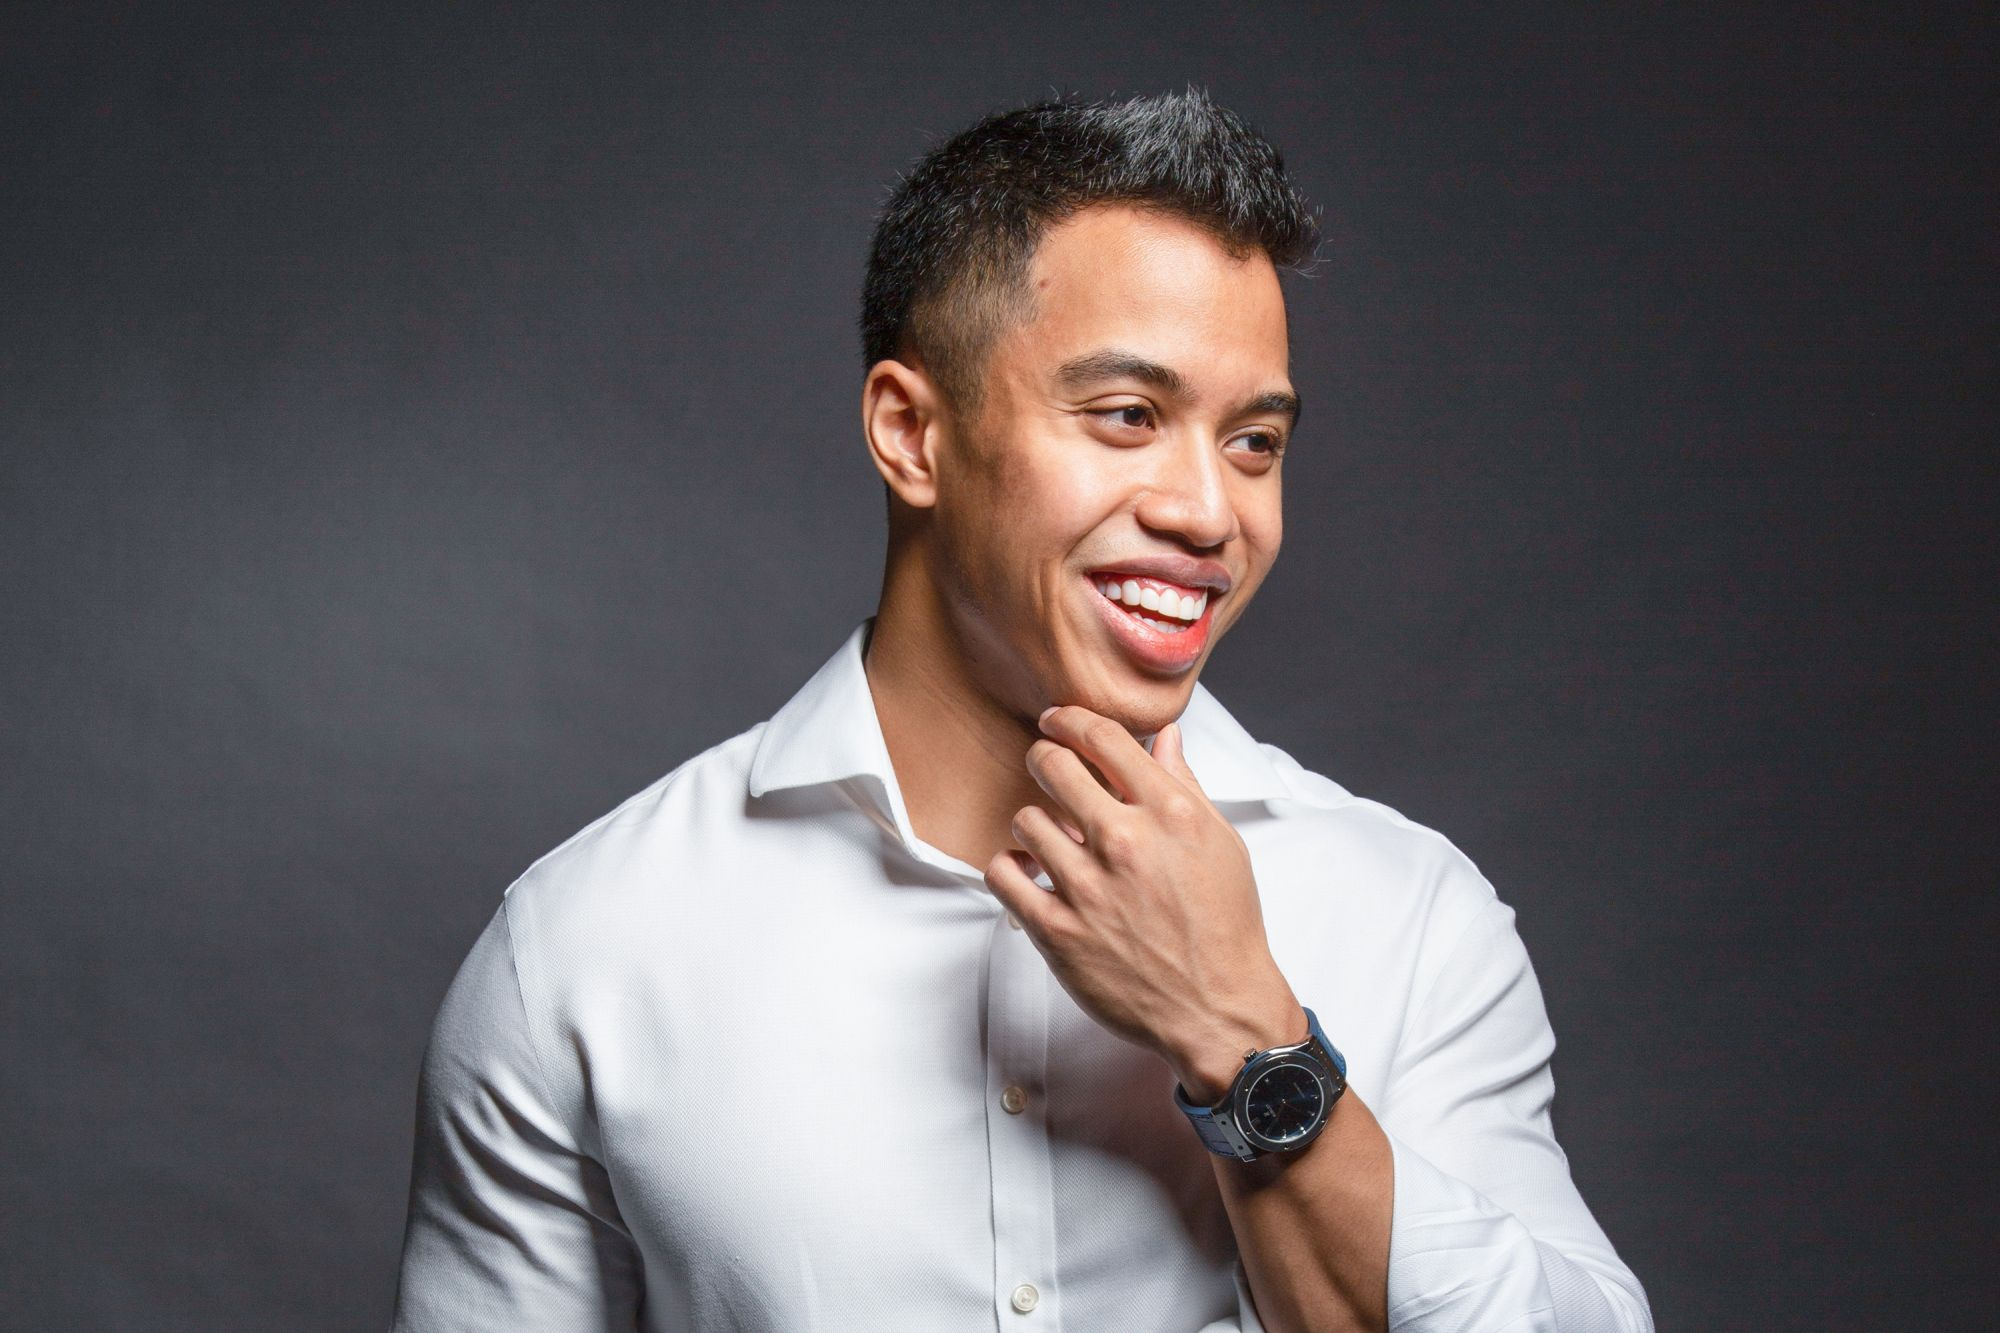 What Matters To Me: Faiz Ariffin, Bodybuilder And Founder Of FZGear